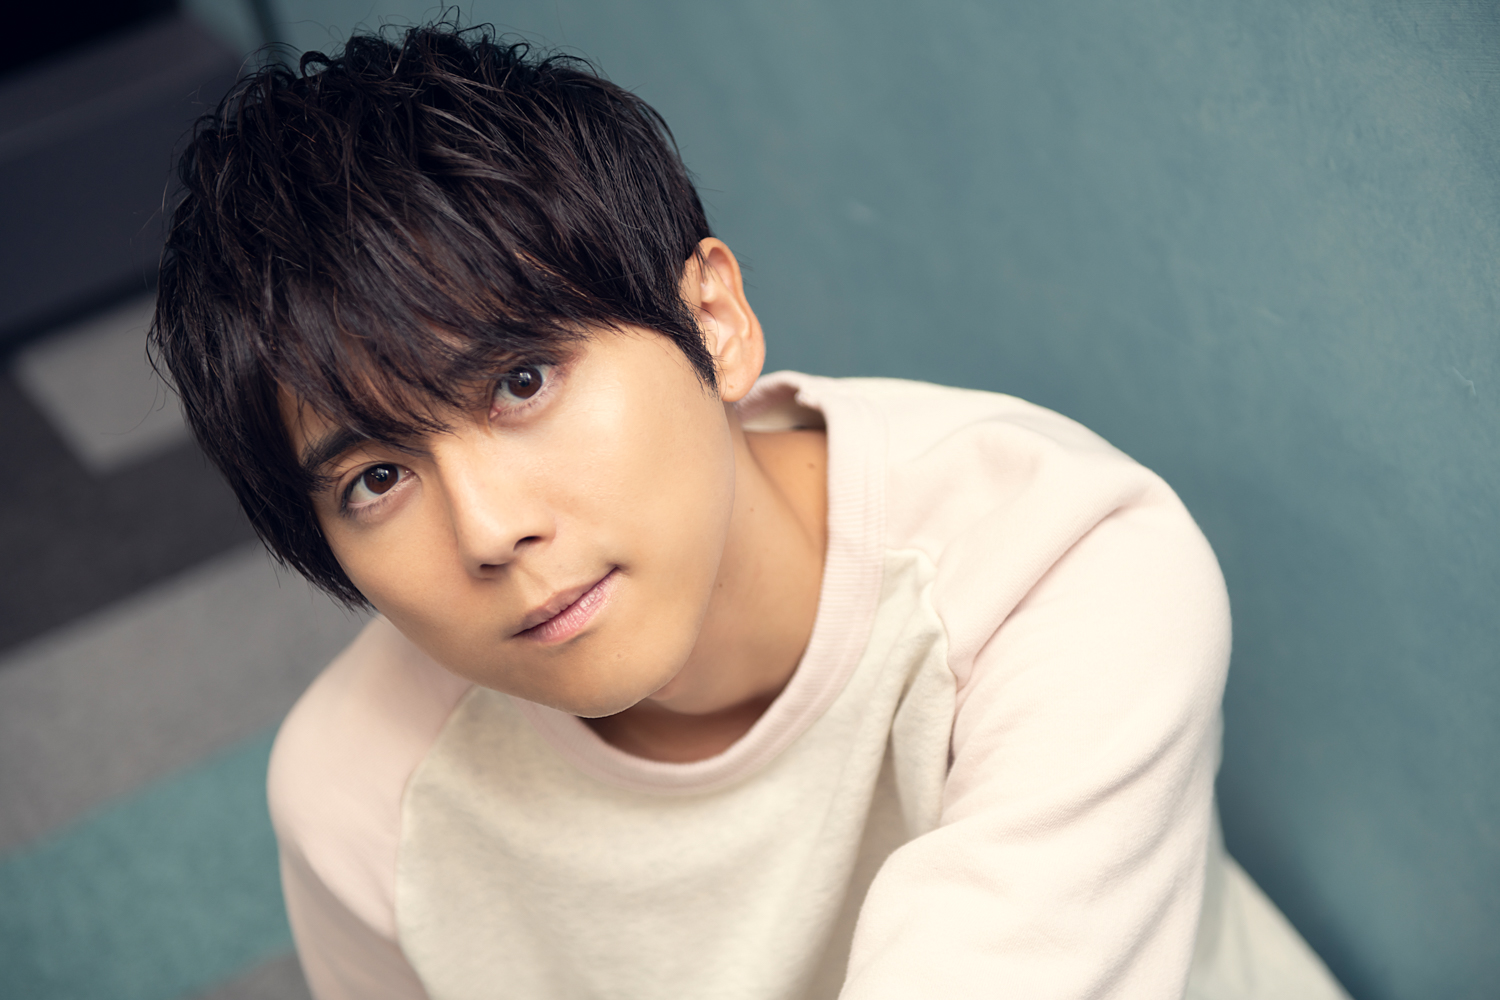 Geek It! Anime Spotlight: Voice Actor Yuki Kaji